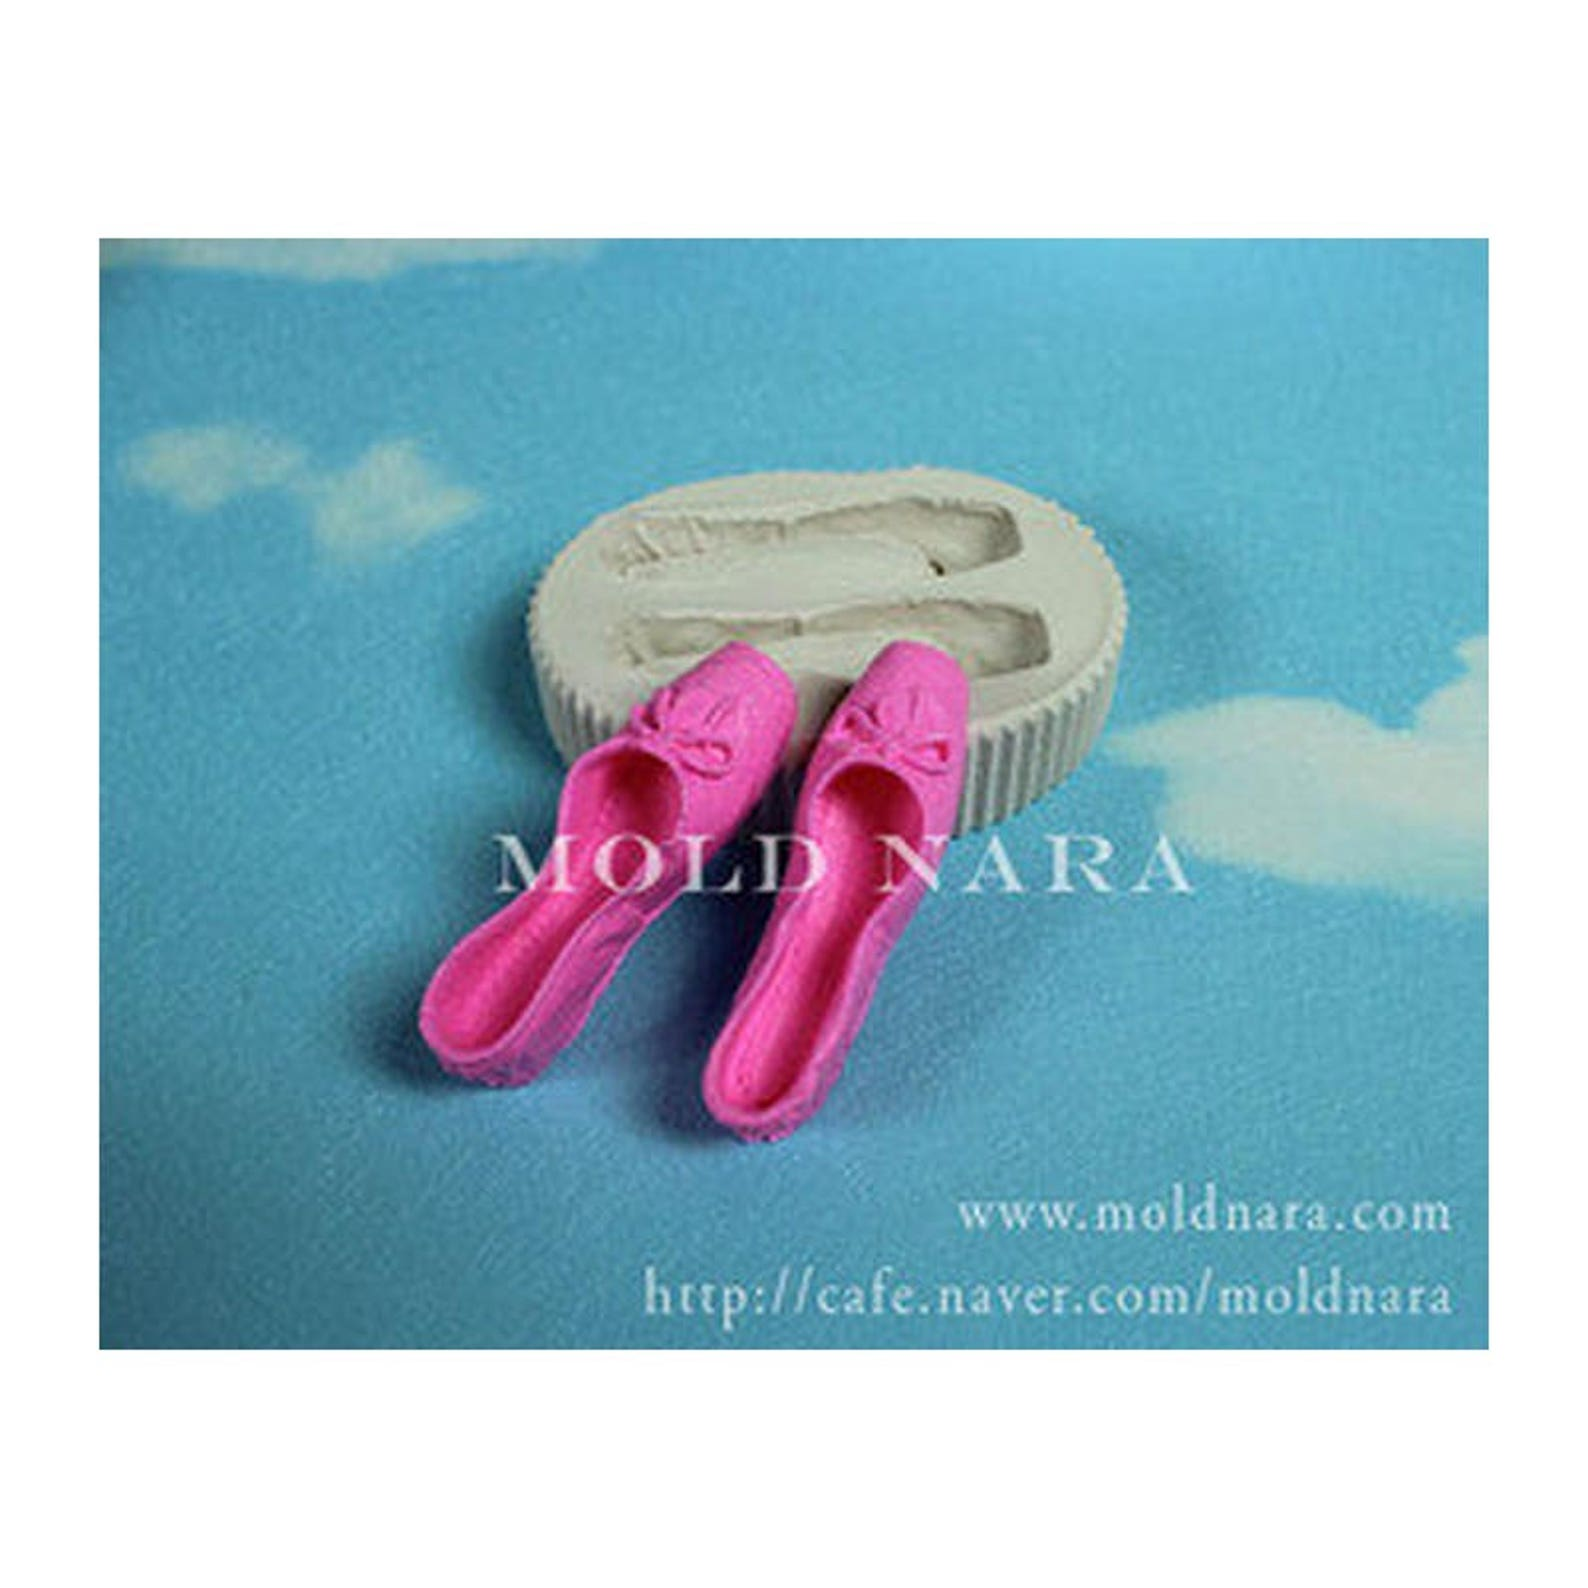 sugarcraft molds polymer clay cake border mold soap molds resin candy chocolate cake decorating tools ballet shoes mold 90989